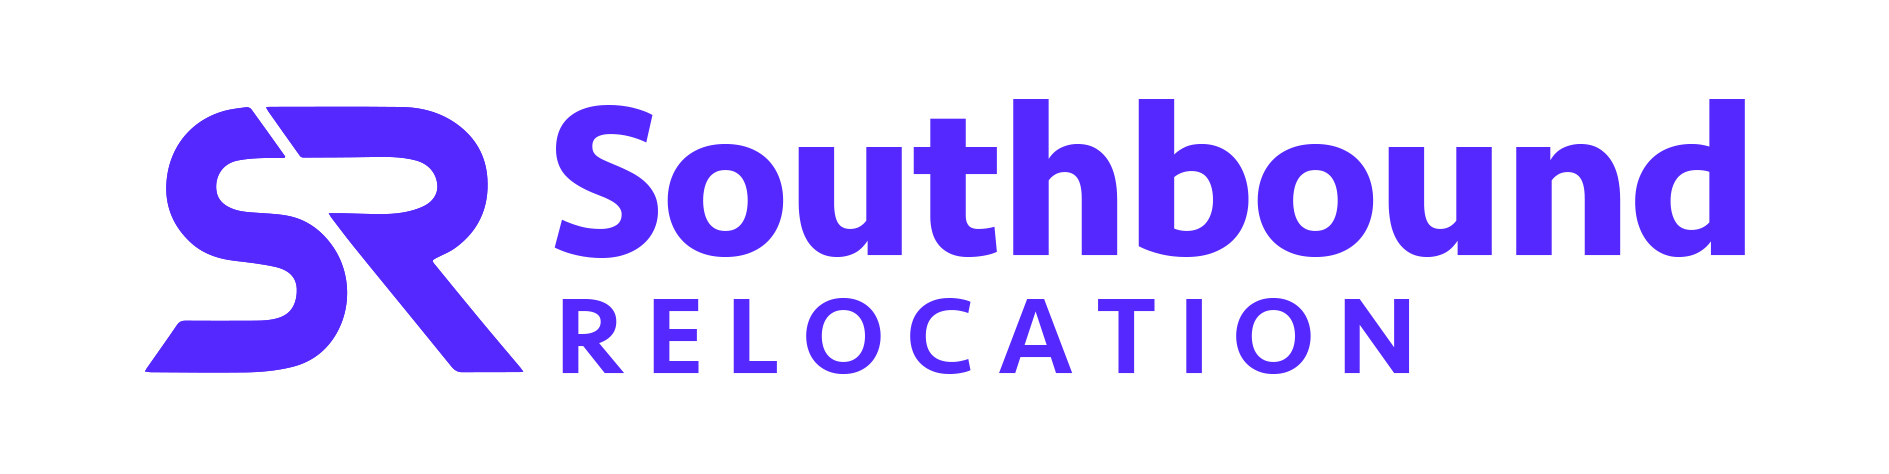 Southbound Relocation Logo